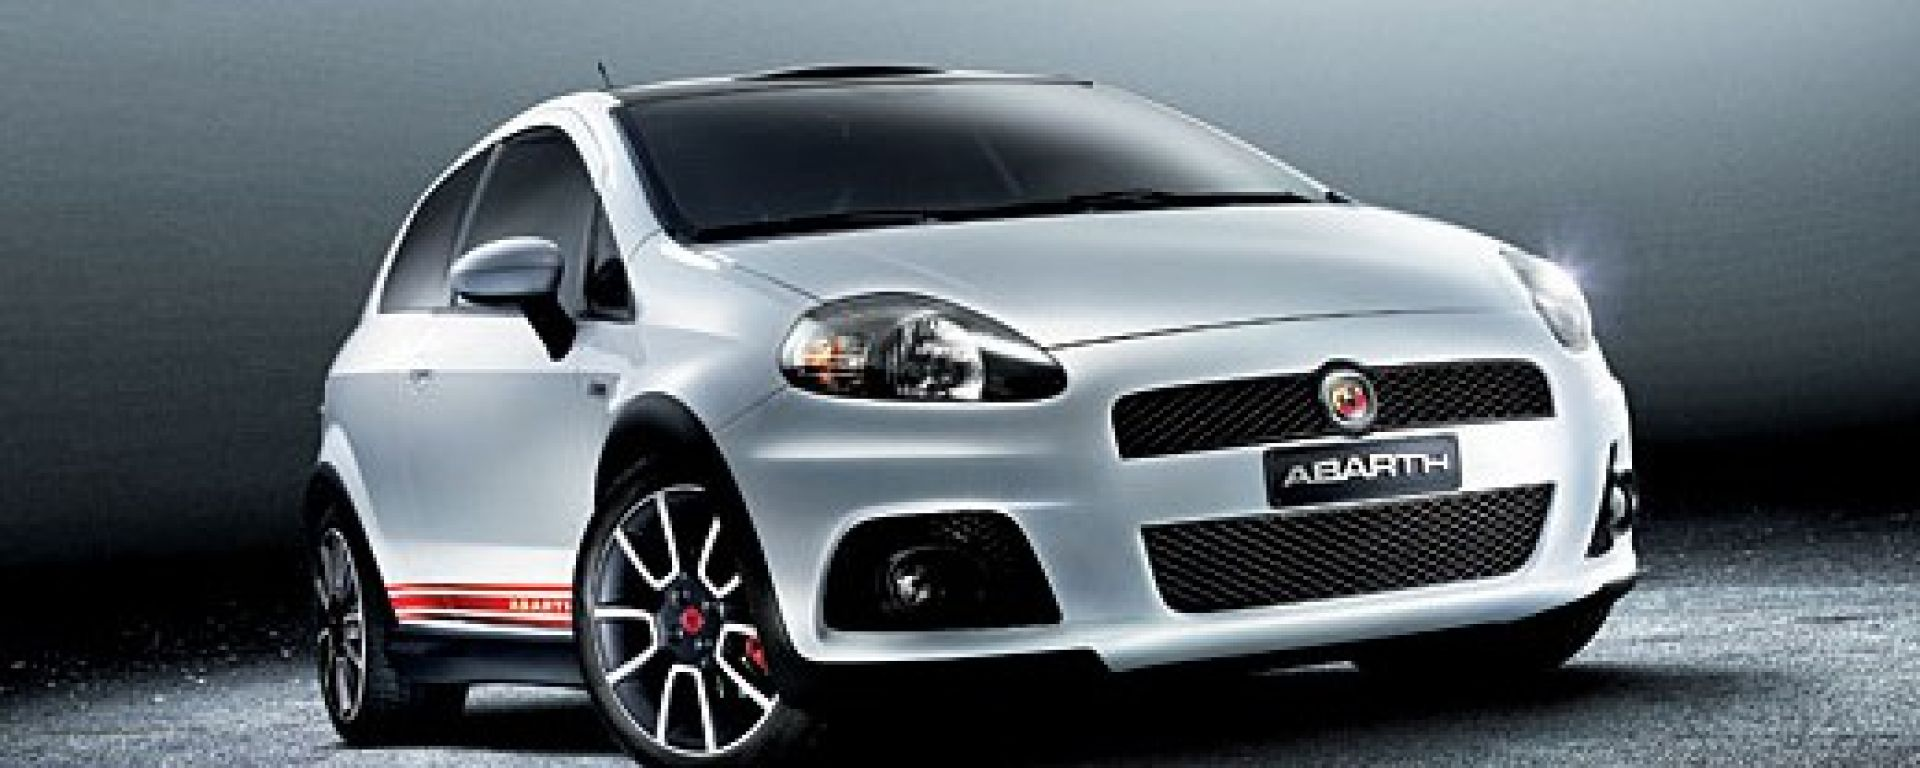 Fiat Grande Punto Abarth Preview